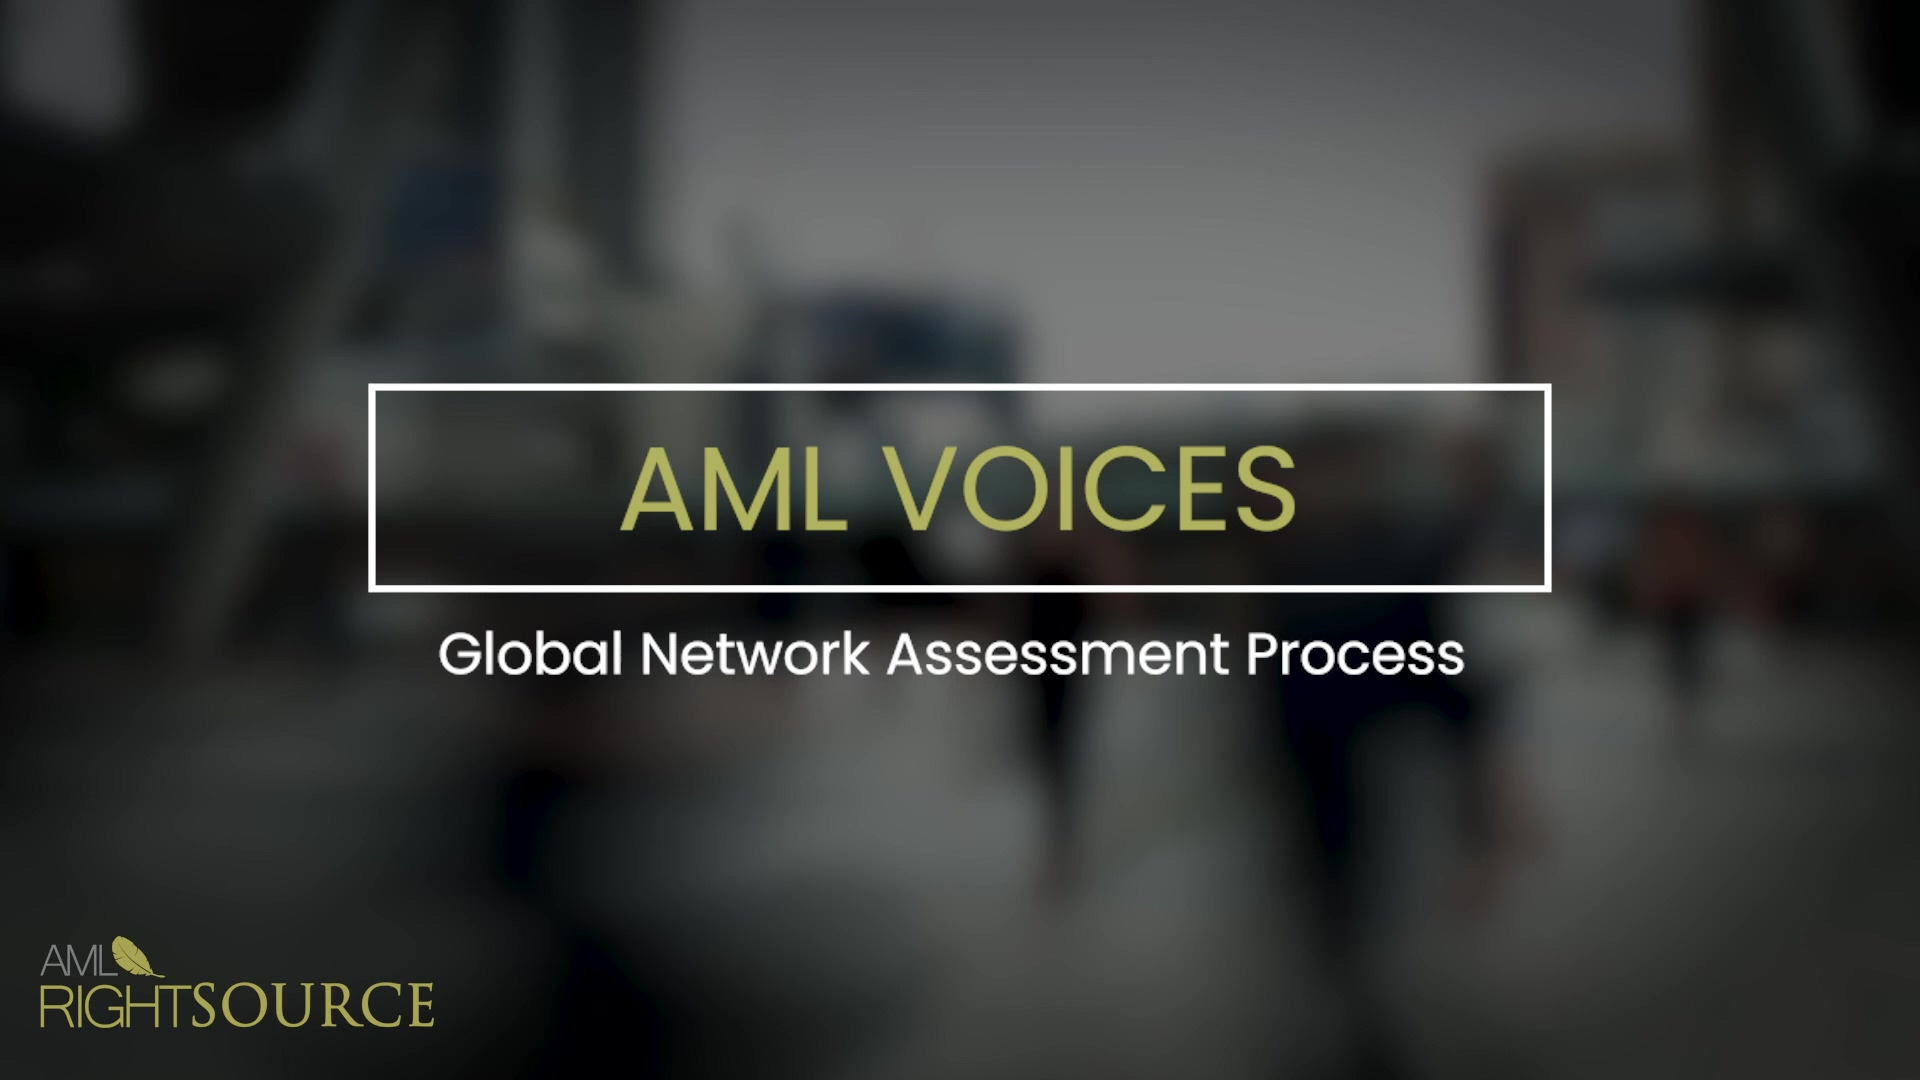 Global Network Assessment Process_Cutdown_V002